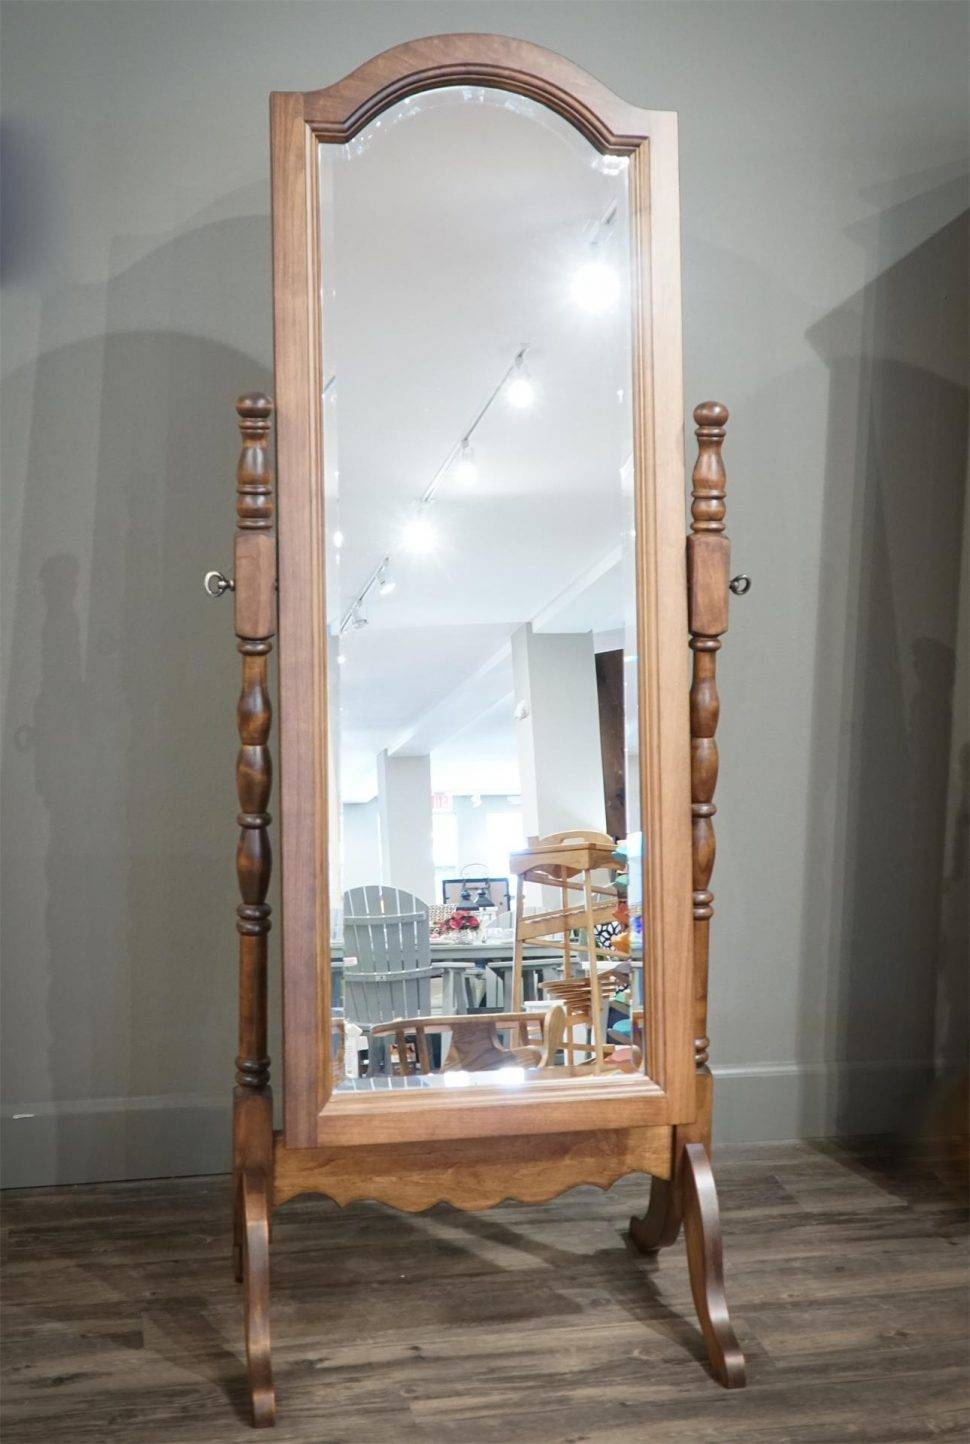 Bedroom Furniture : Free Standing Mirror Wood Framed Mirrors regarding Small Free Standing Mirrors (Image 6 of 25)